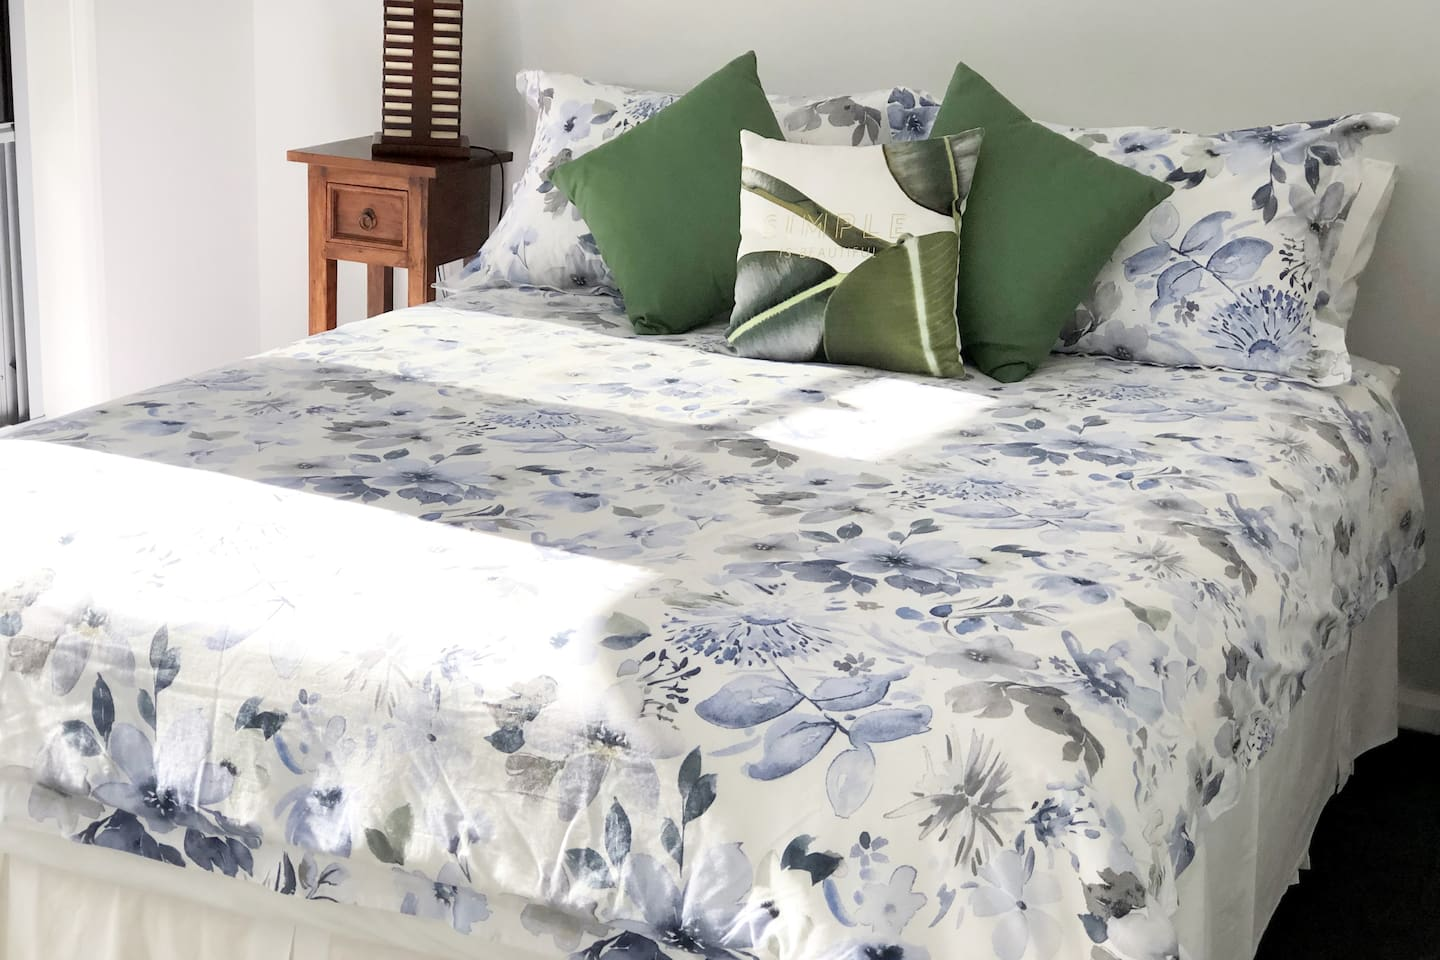 The Queen Bedroom accommodates two people Comfortably with Air-conditioner if liked.